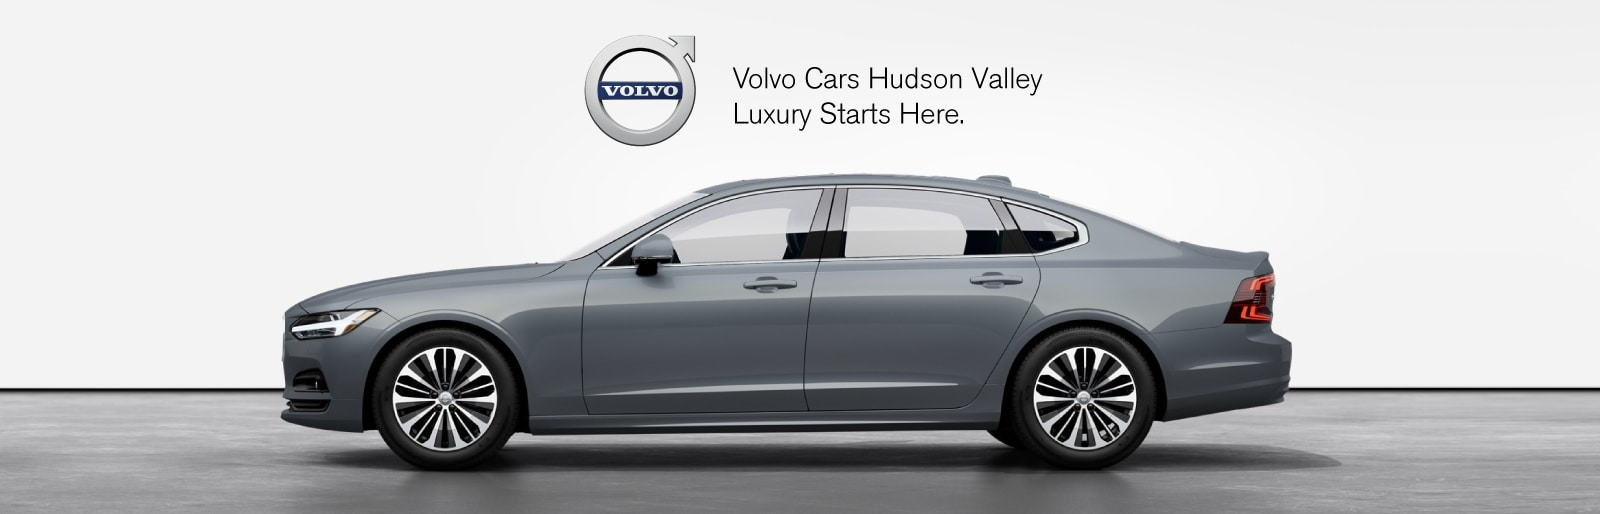 Volvo S90 lease deal image